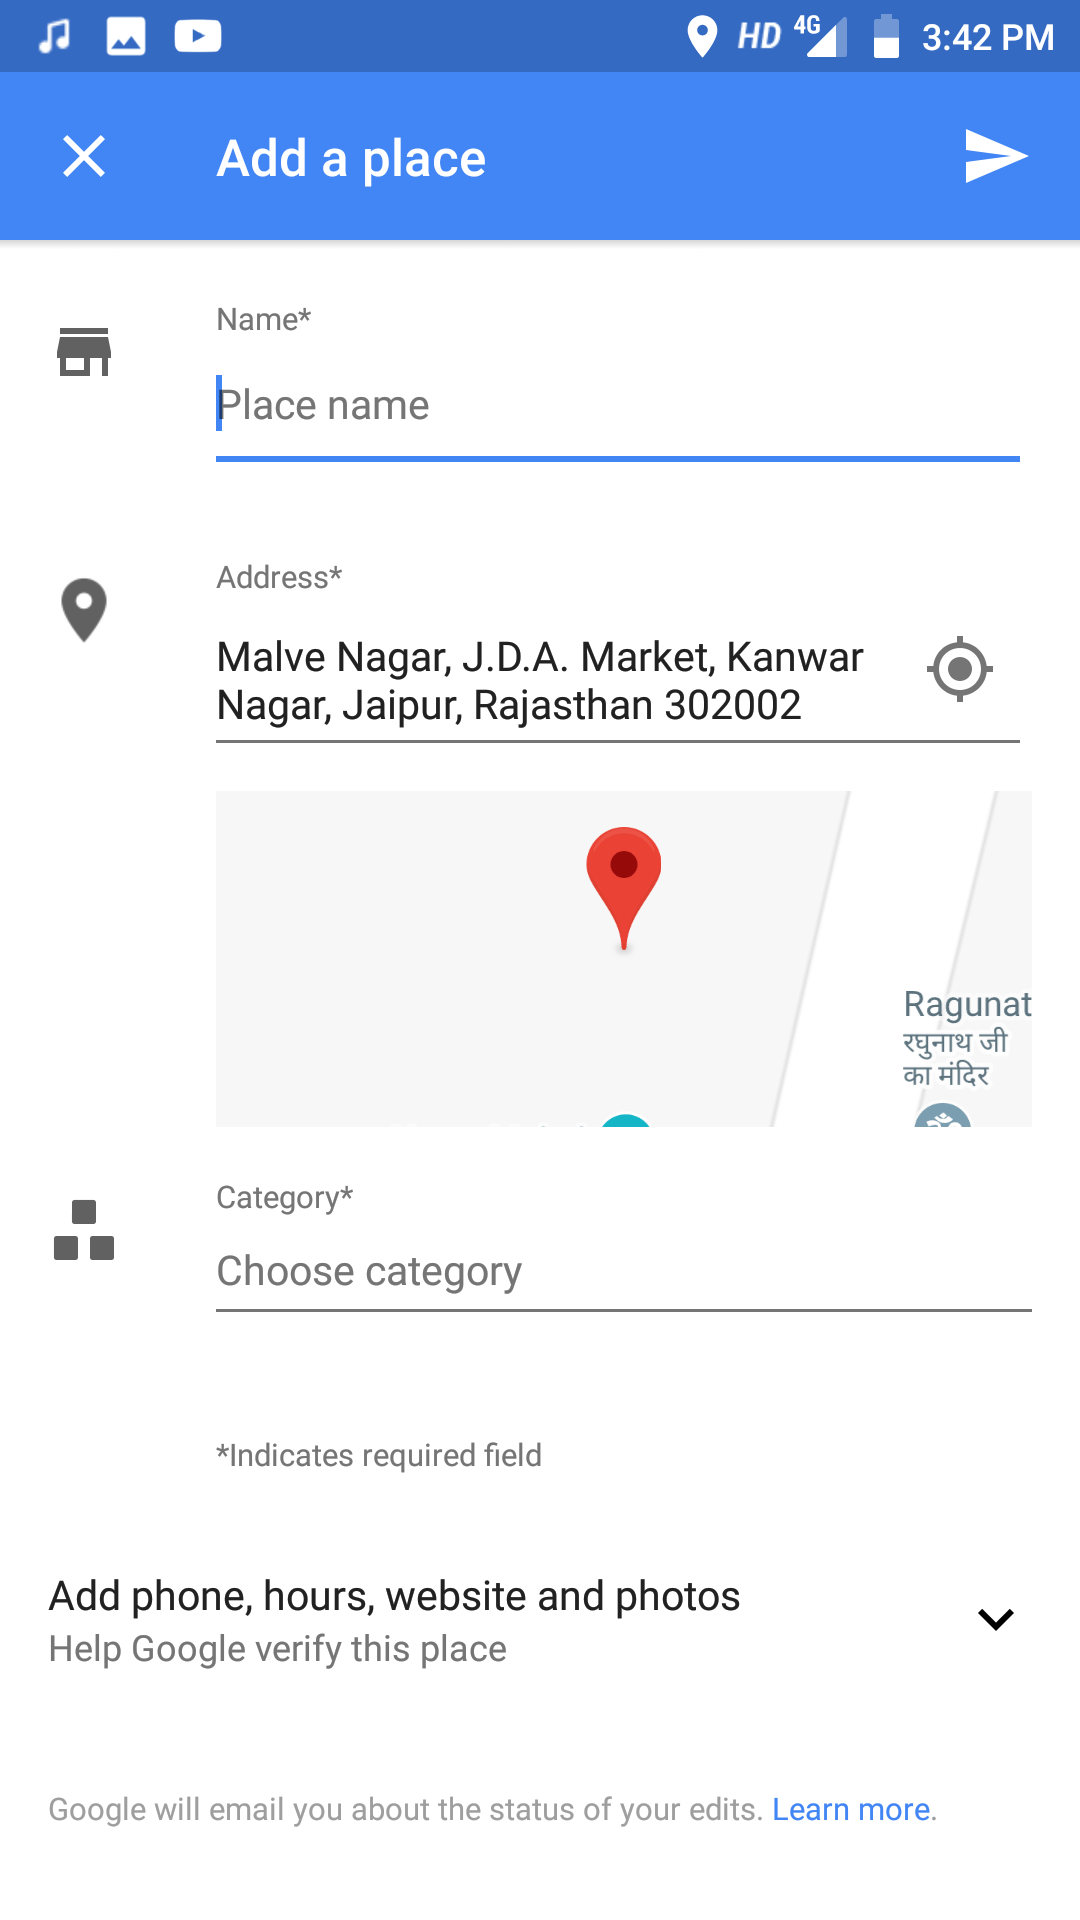 Add a Missing Place on Google Maps